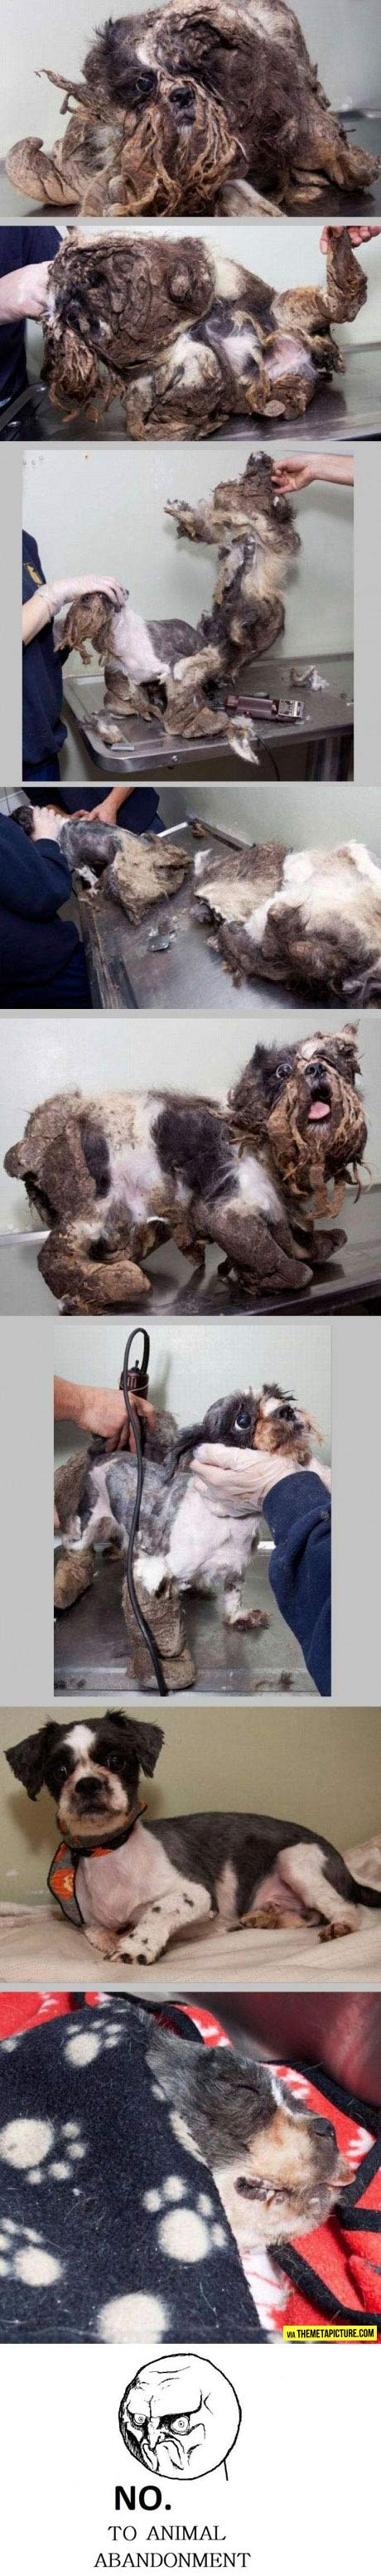 Rescued and saved…